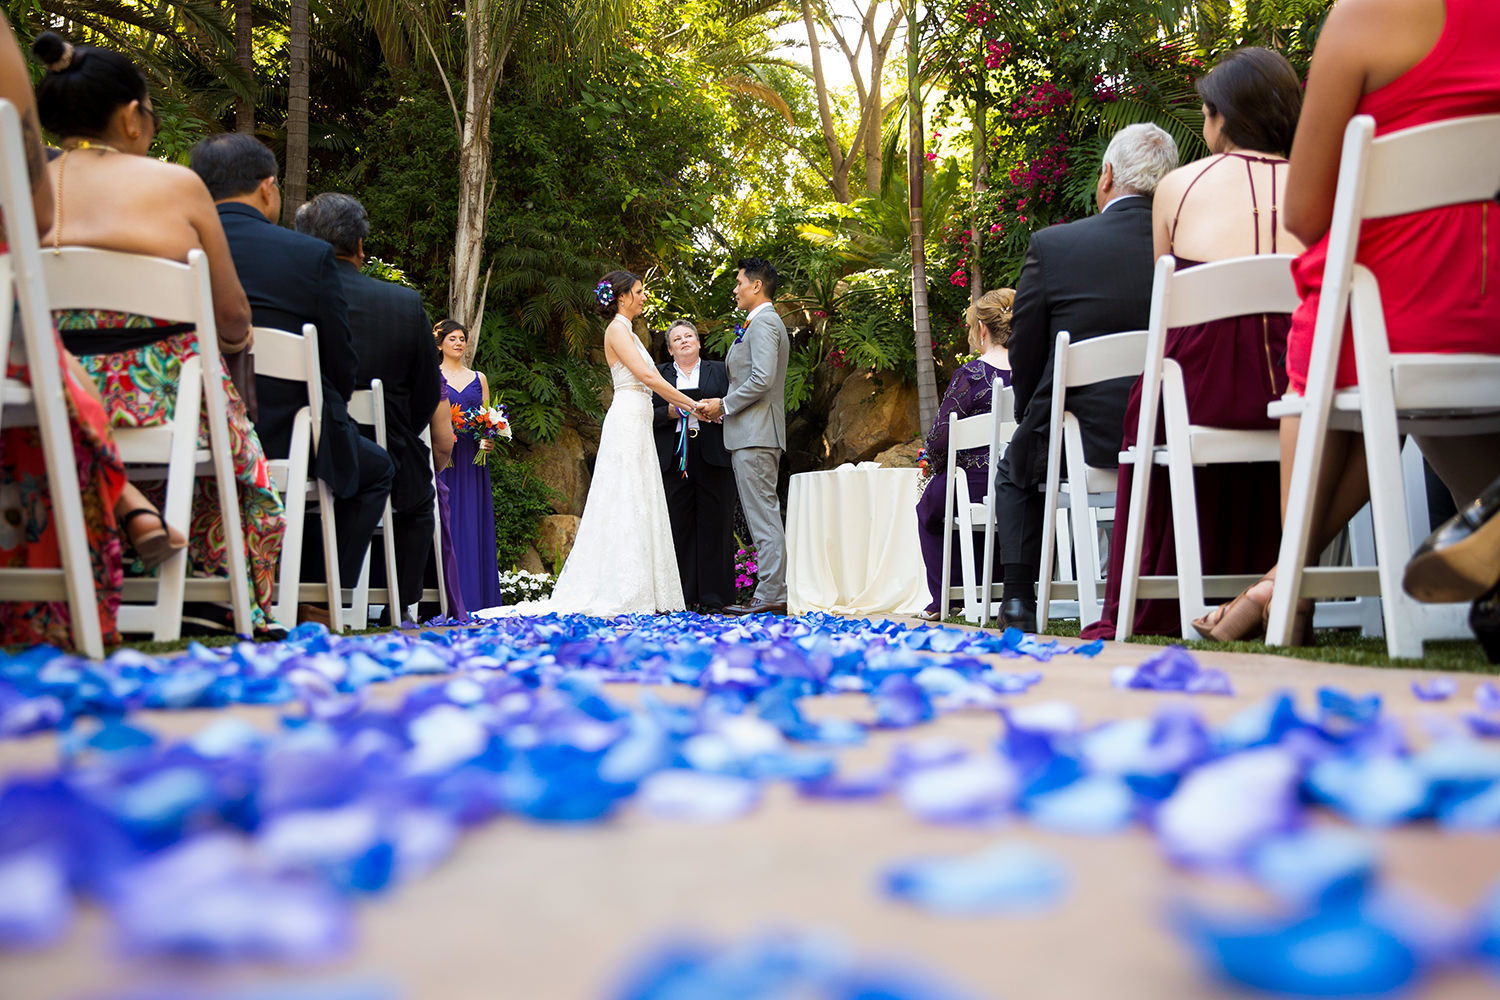 Creative angles for wedding ceremony photography